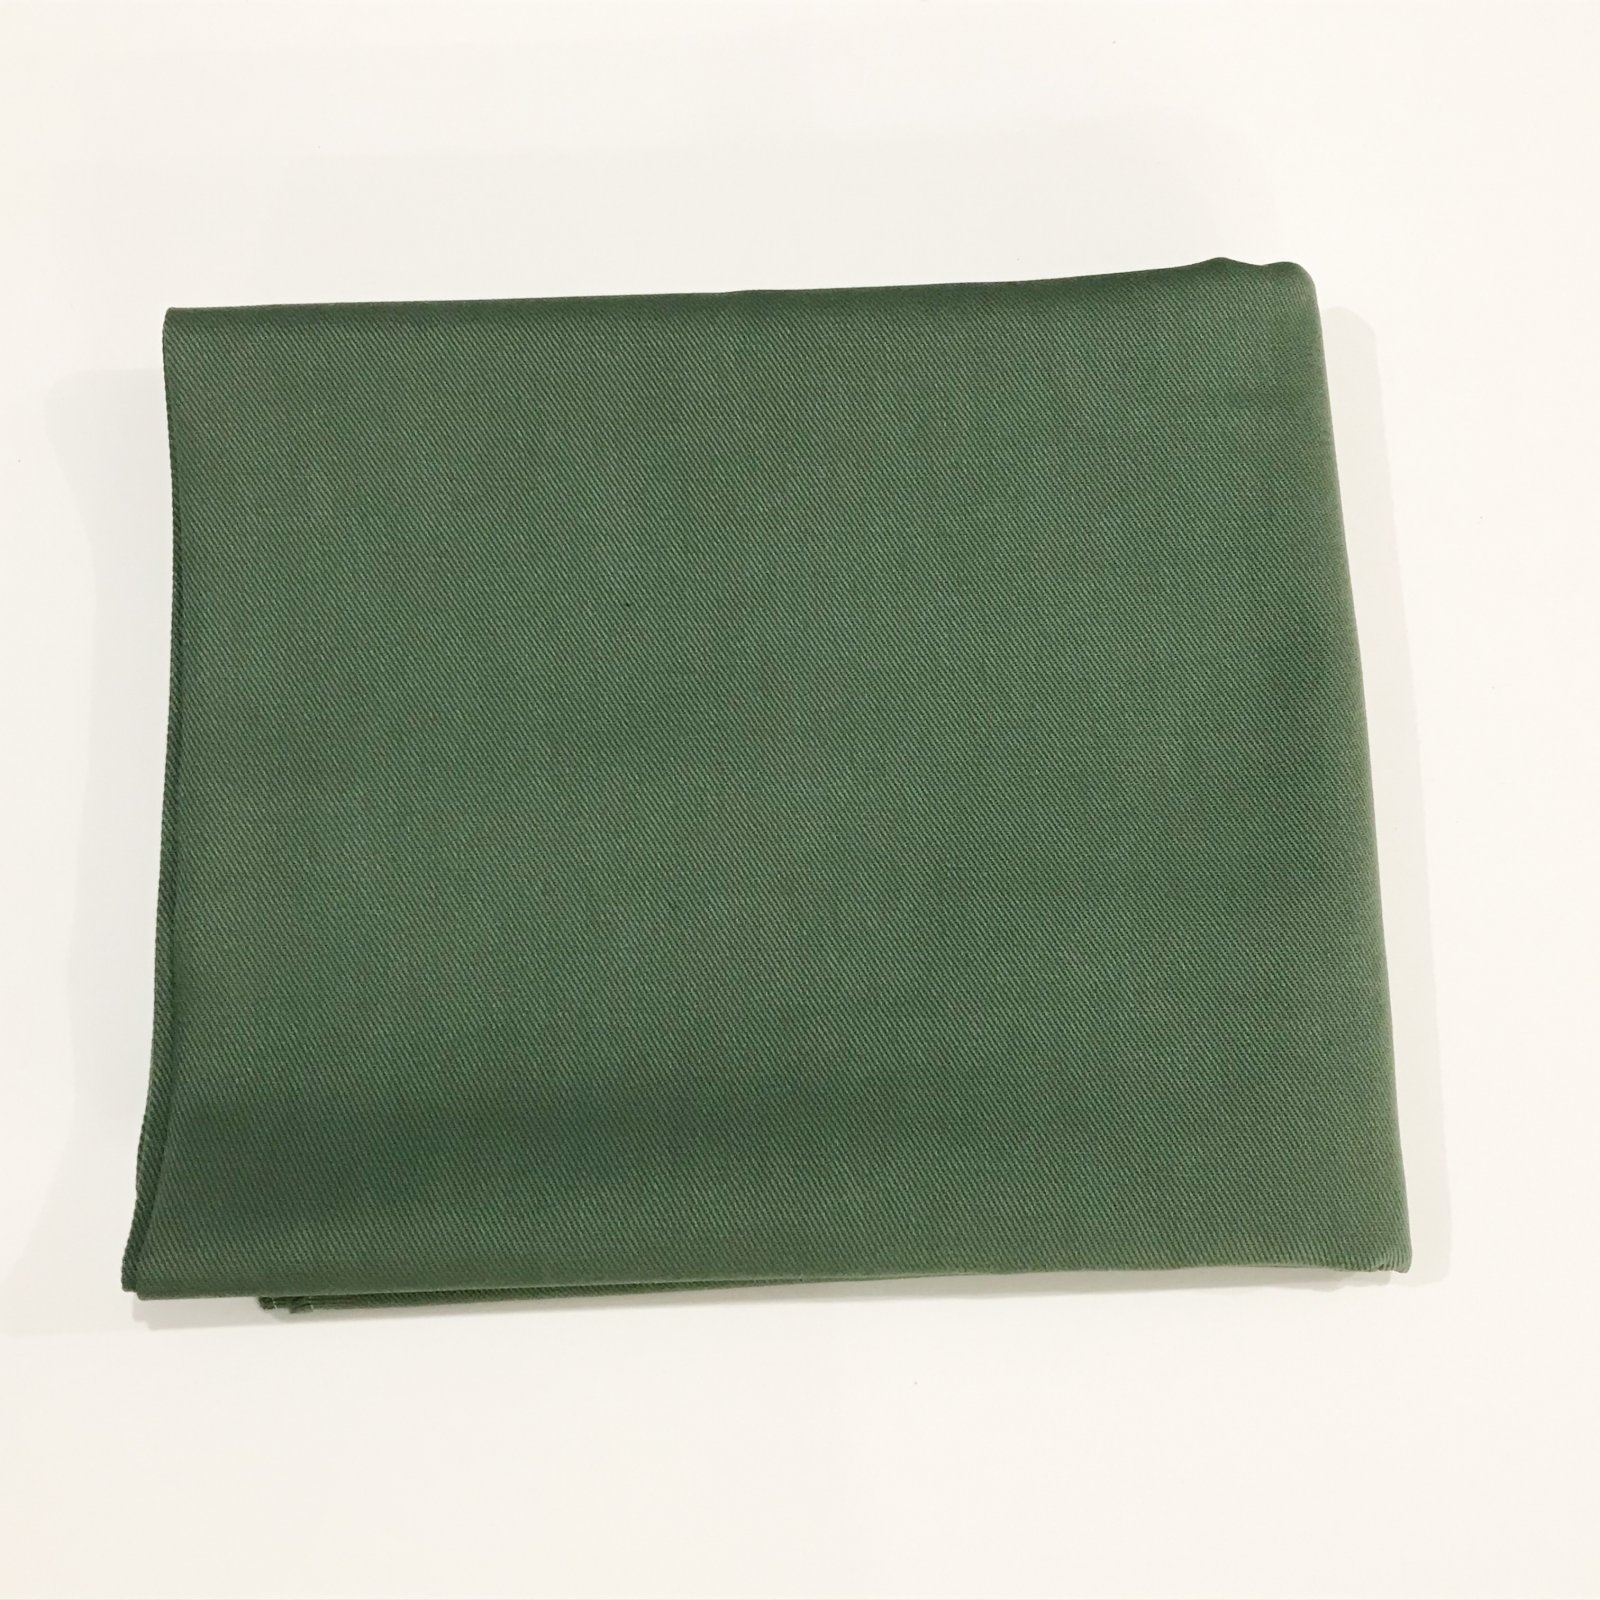 2 yards + 4 inches - Ventana Twill - Evergreen